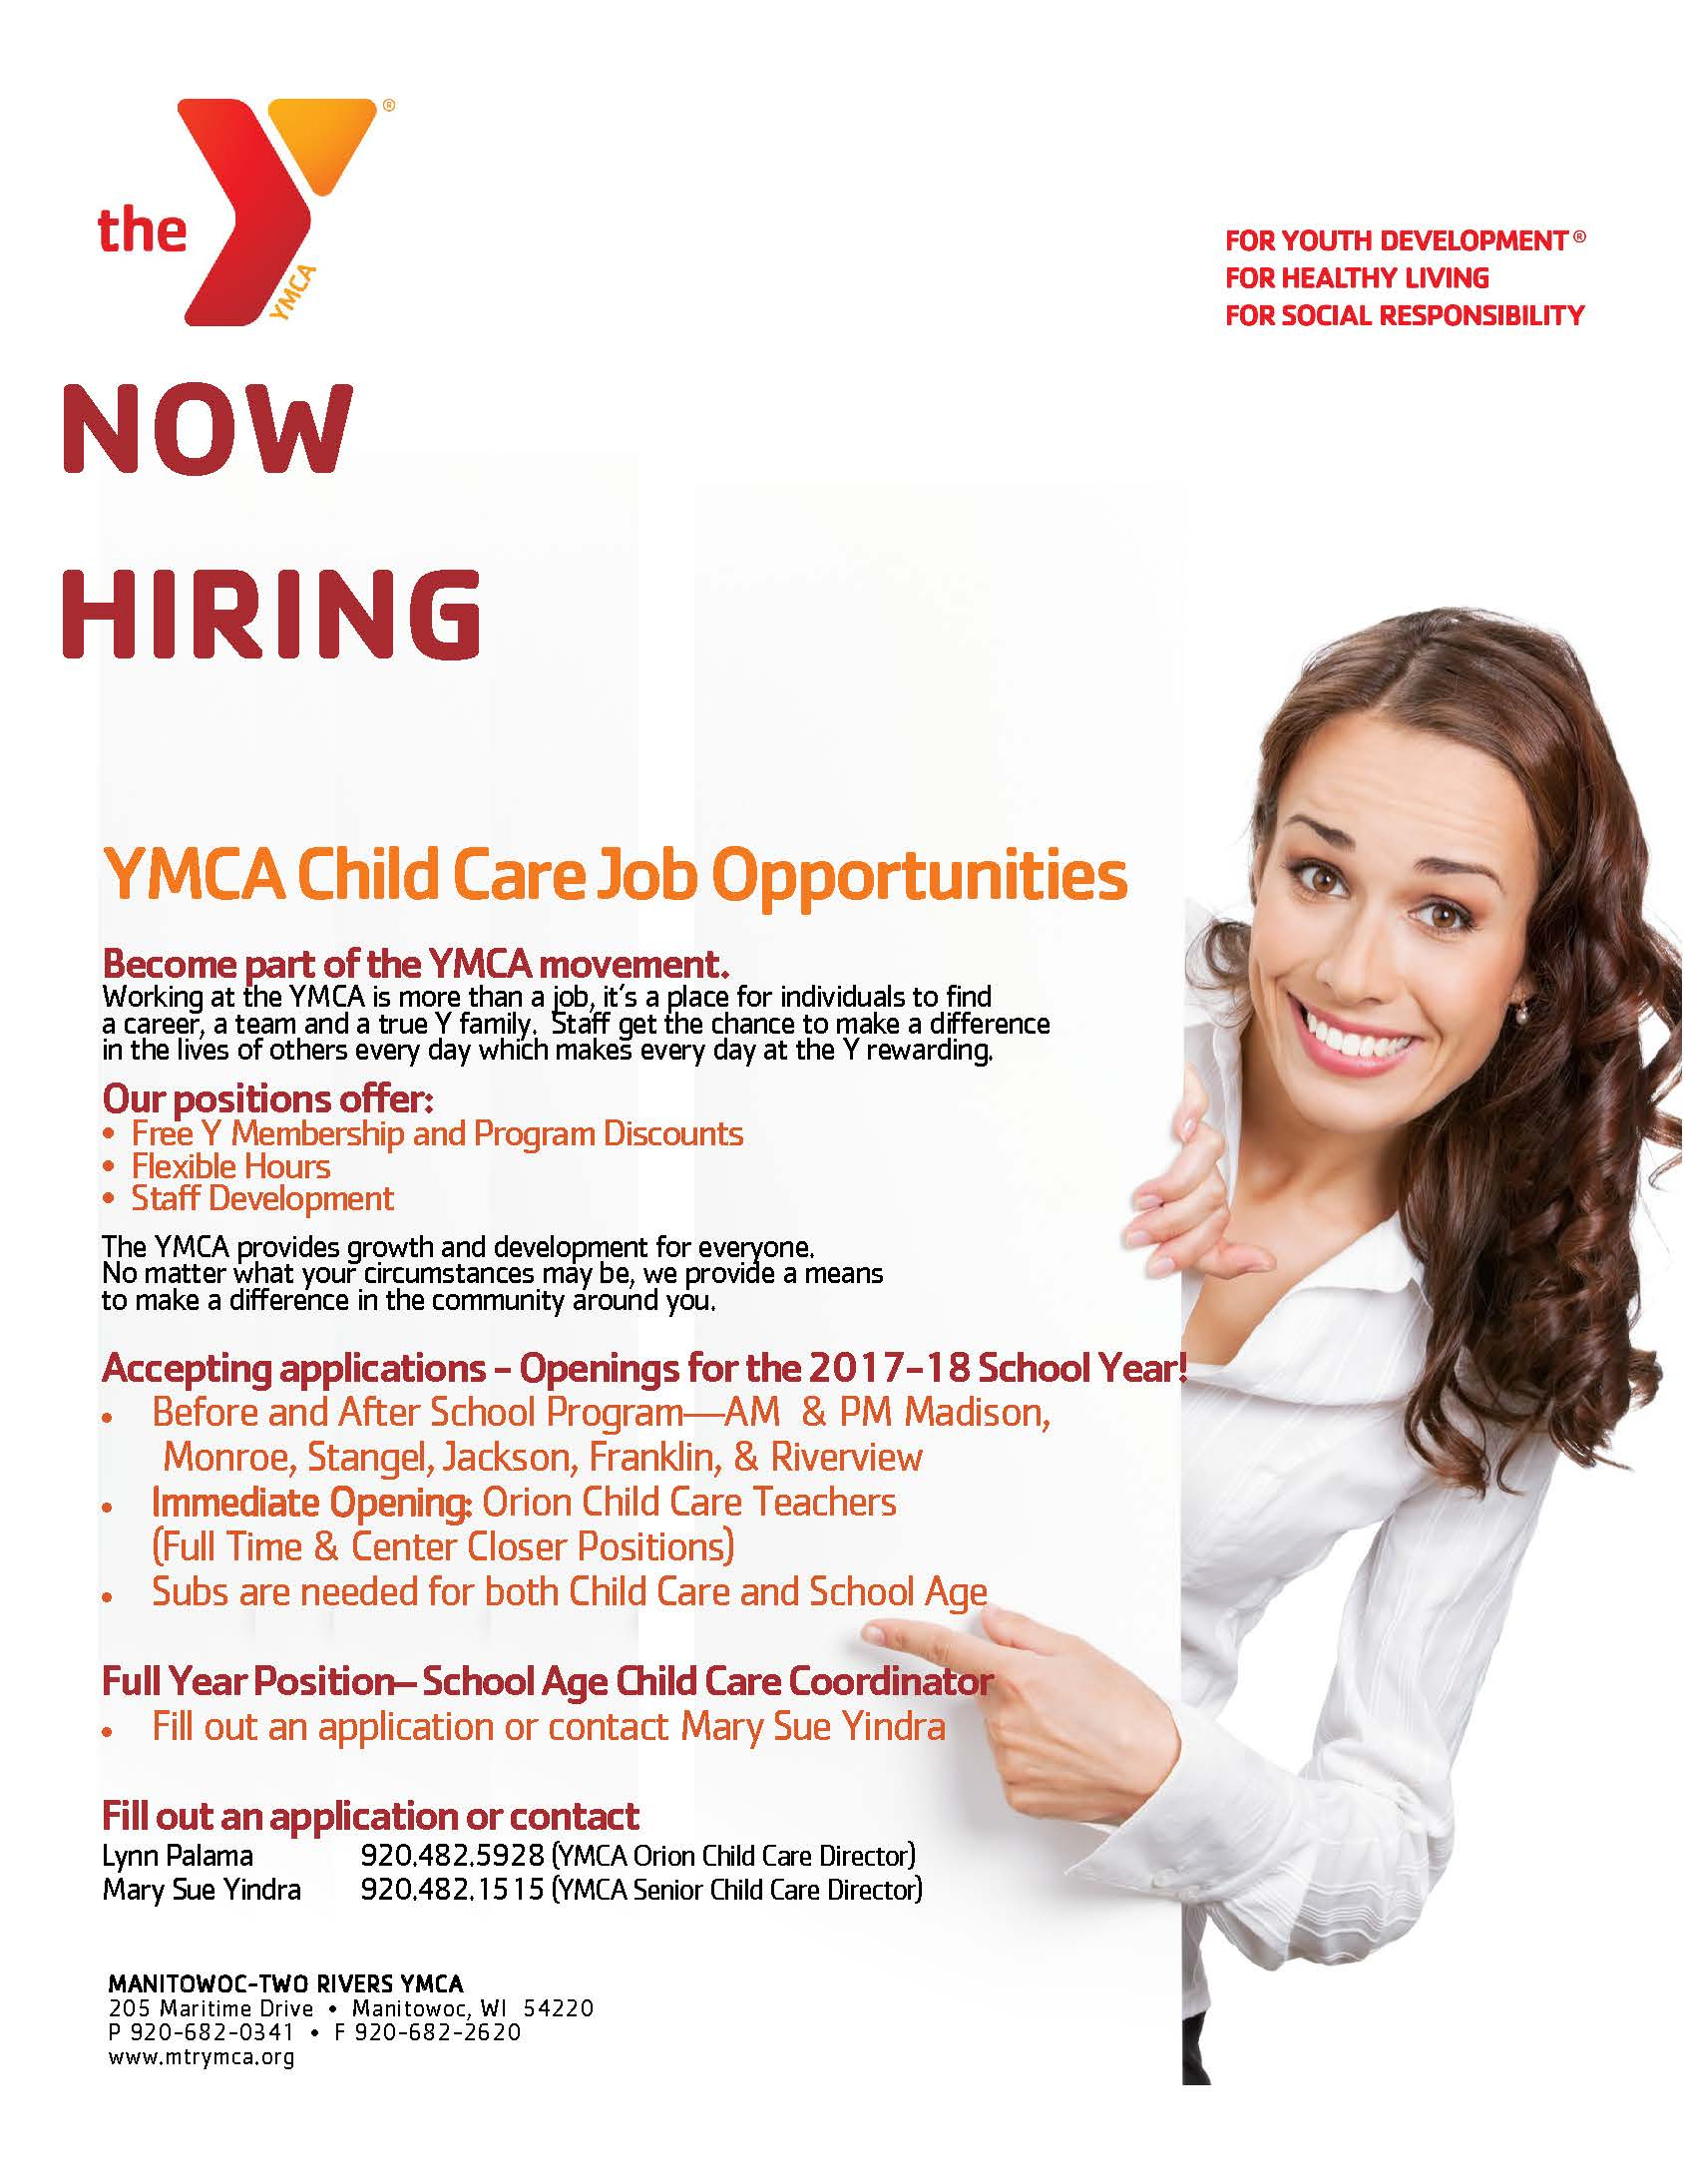 http://mtrymca.org/sites/mtrymca.org/assets/images/involved/Child-Care-Job-Opportunites.jpg